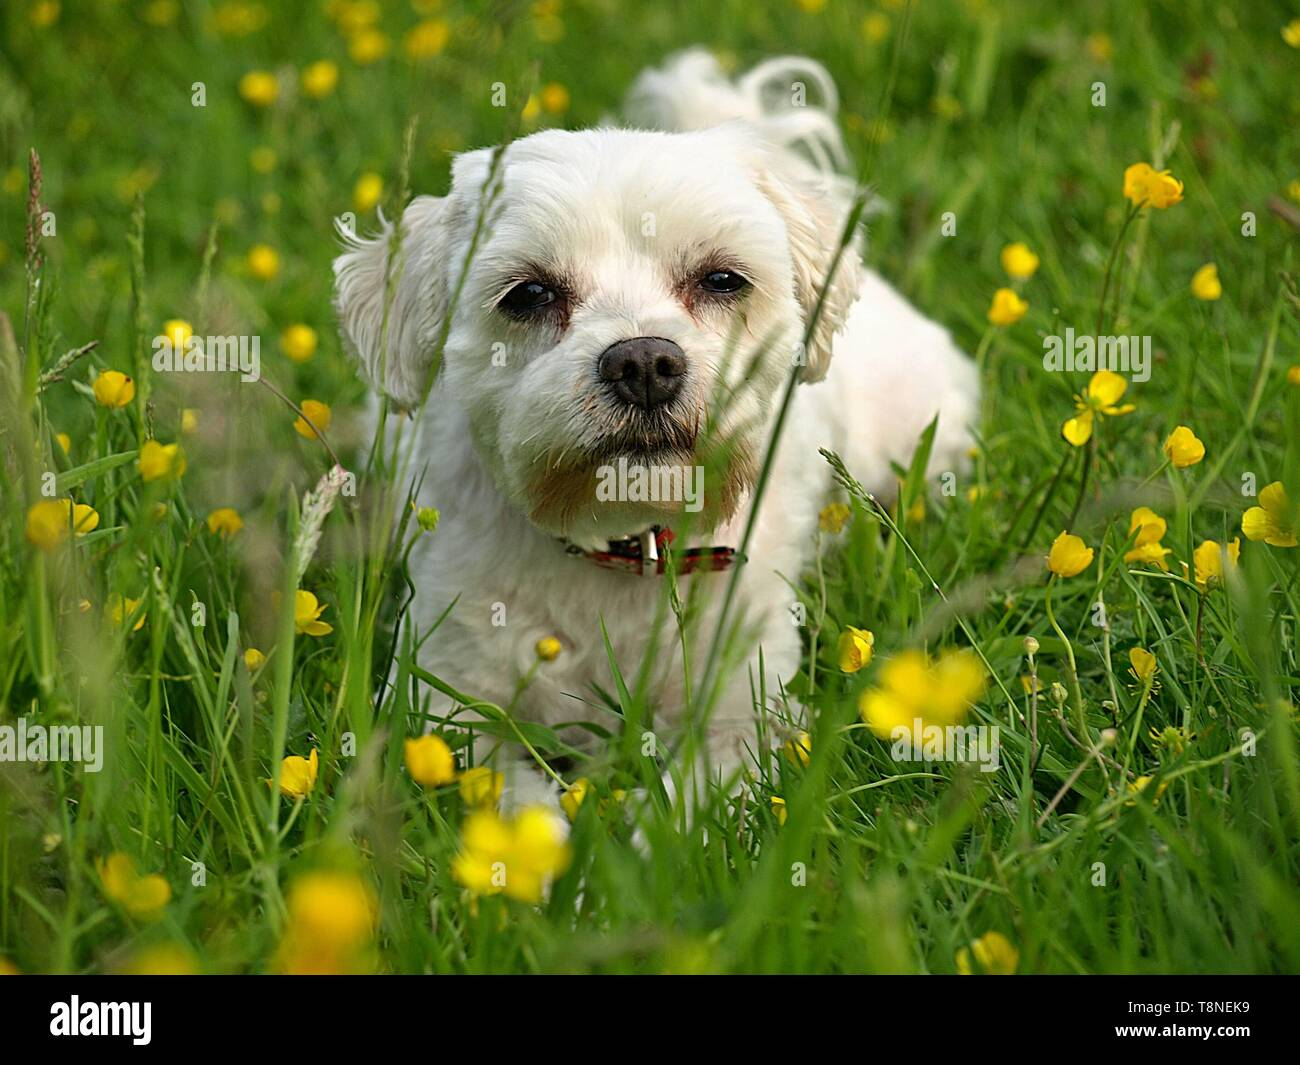 Cute Maltese dog on a meadow - Stock Image